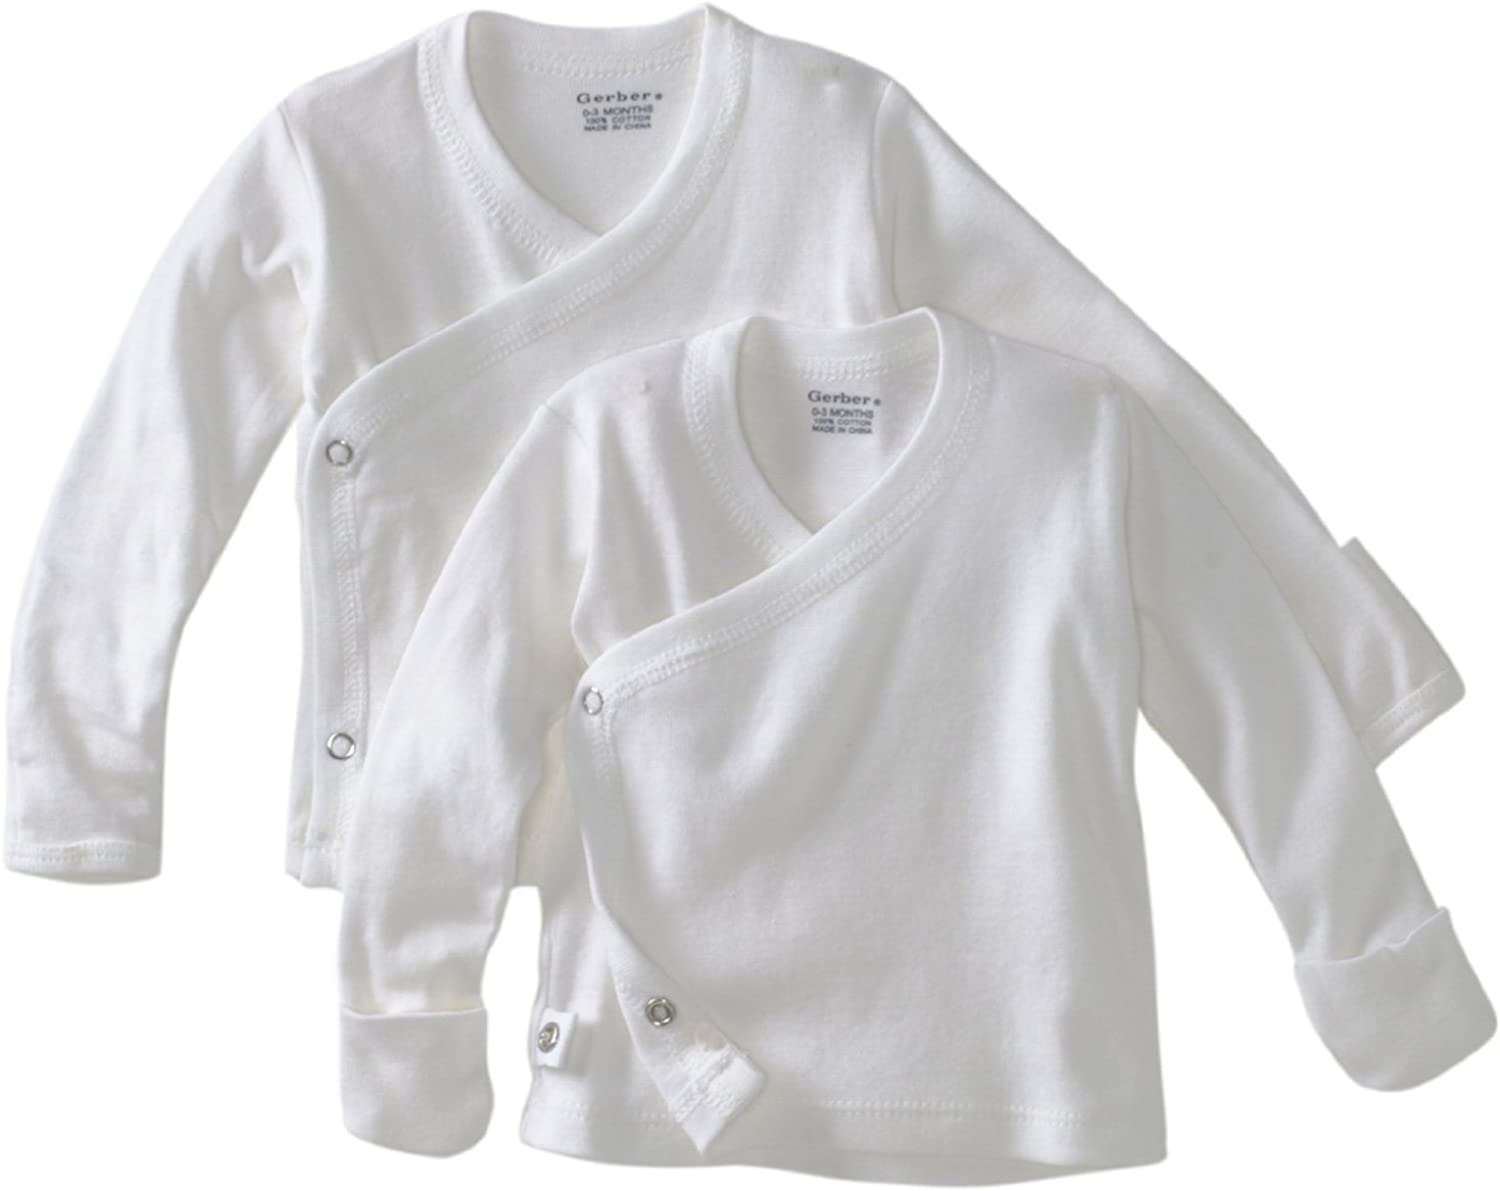 Unisex White 2 pk Long Sleeve Side Snap Shirt 0-3 Months